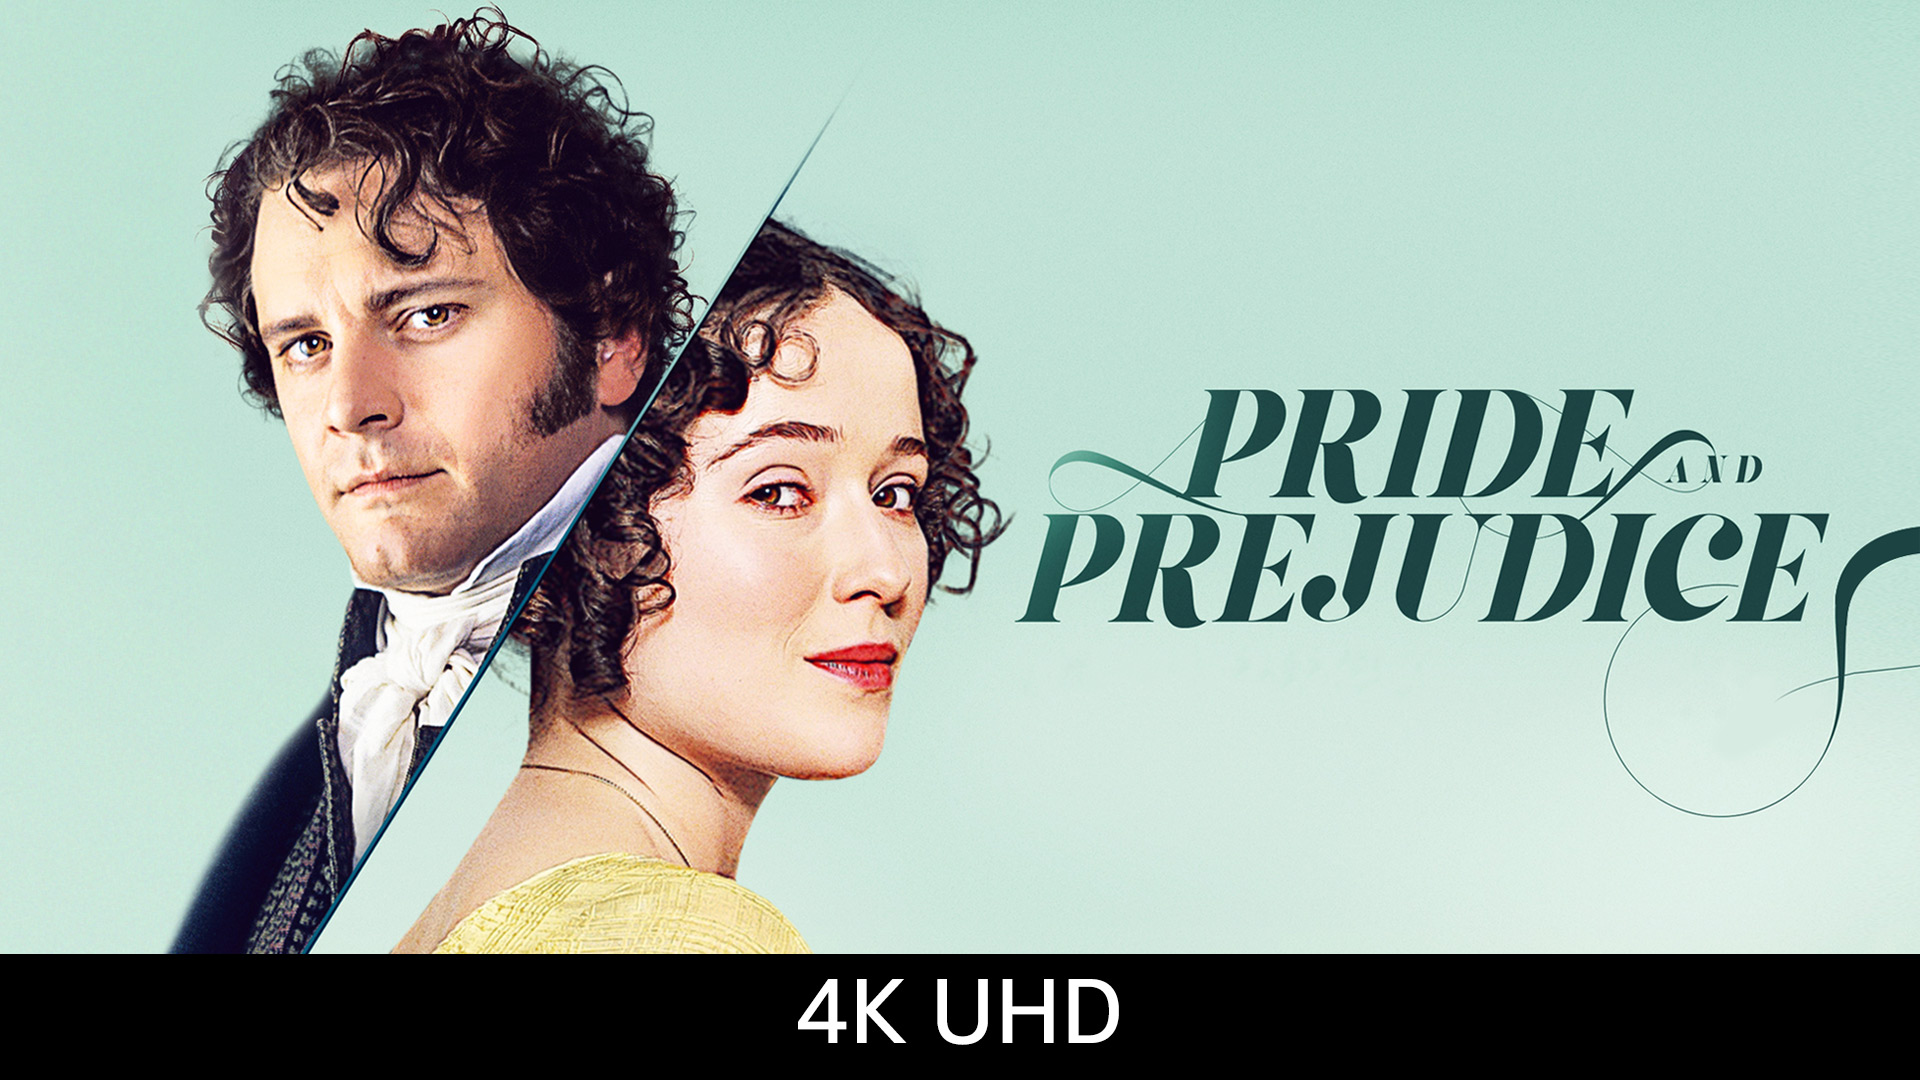 Pride and Prejudice (4K UHD)